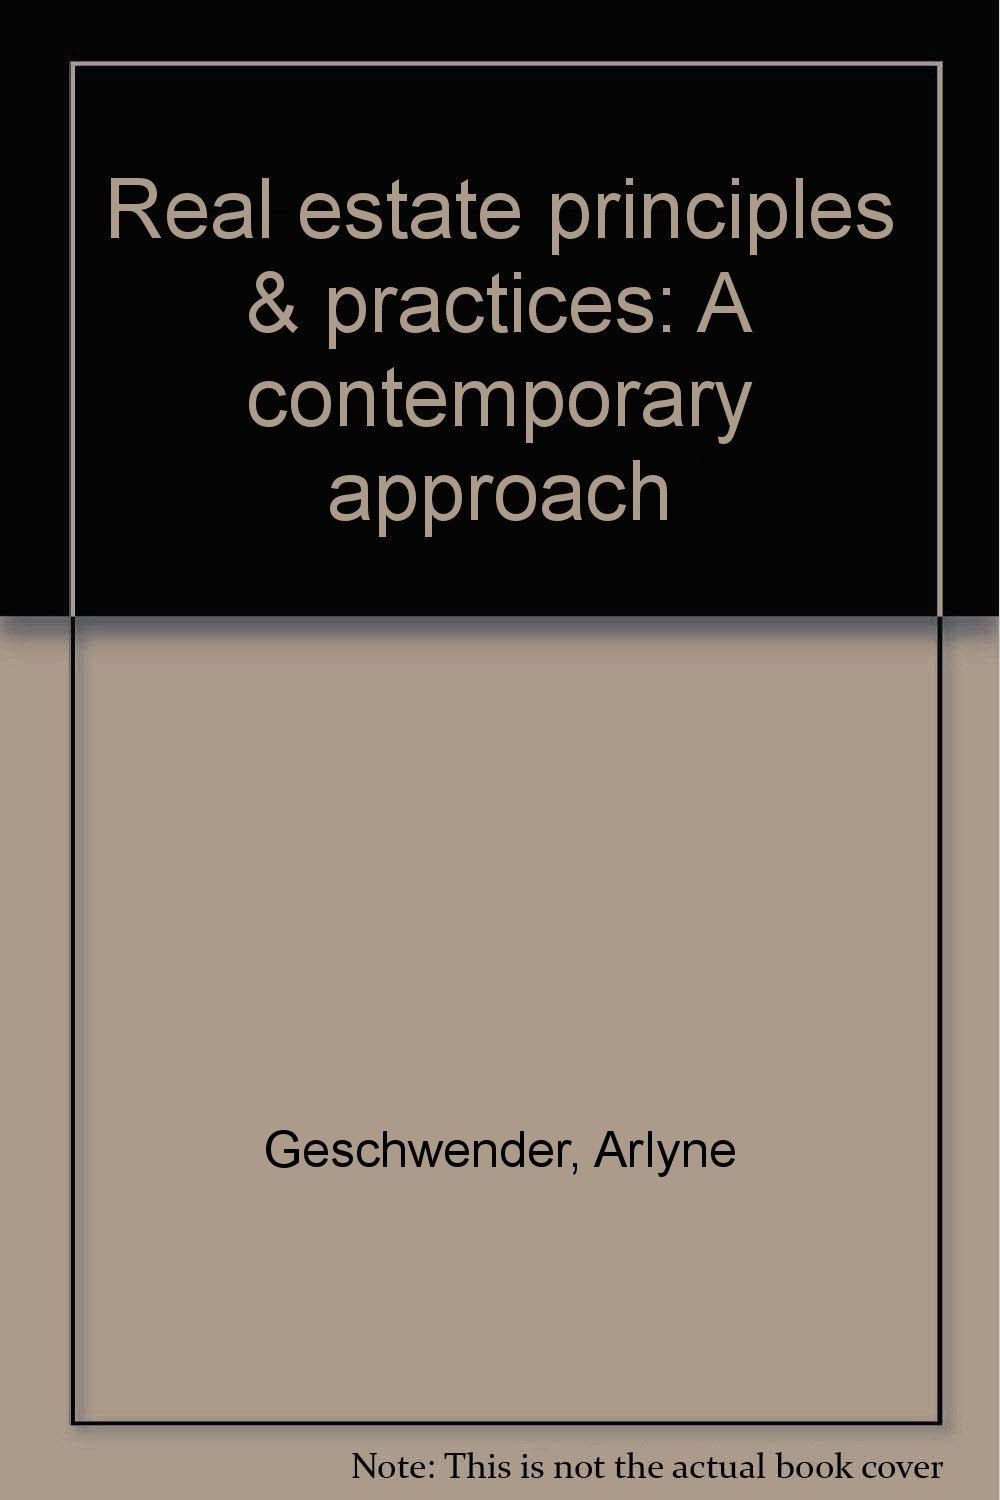 Real estate principles & practices: A contemporary approach